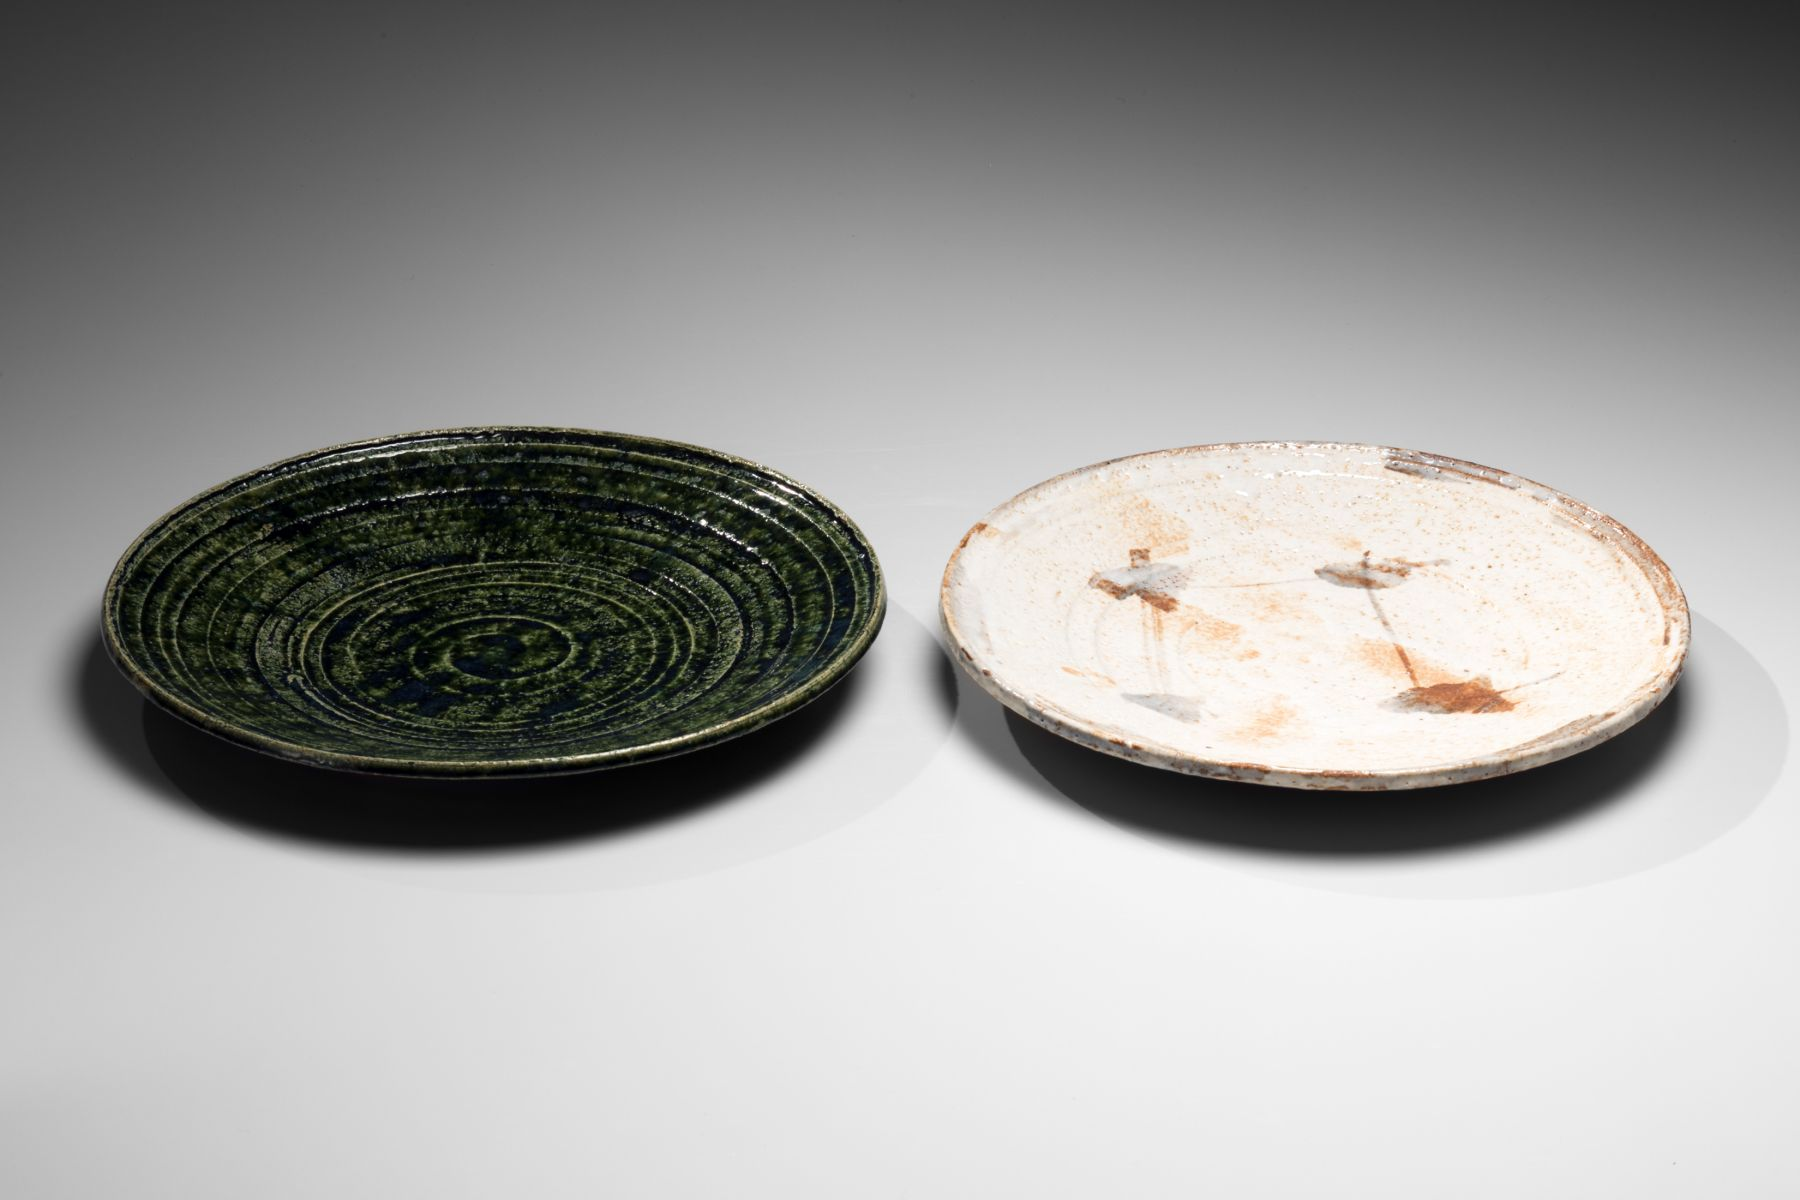 Okabe Mineo (1919-1990), Pair of circular platters, one with oribe-glaze and rings of concentric linear patterning and the other with shino-glaze and iron-glaze decoration